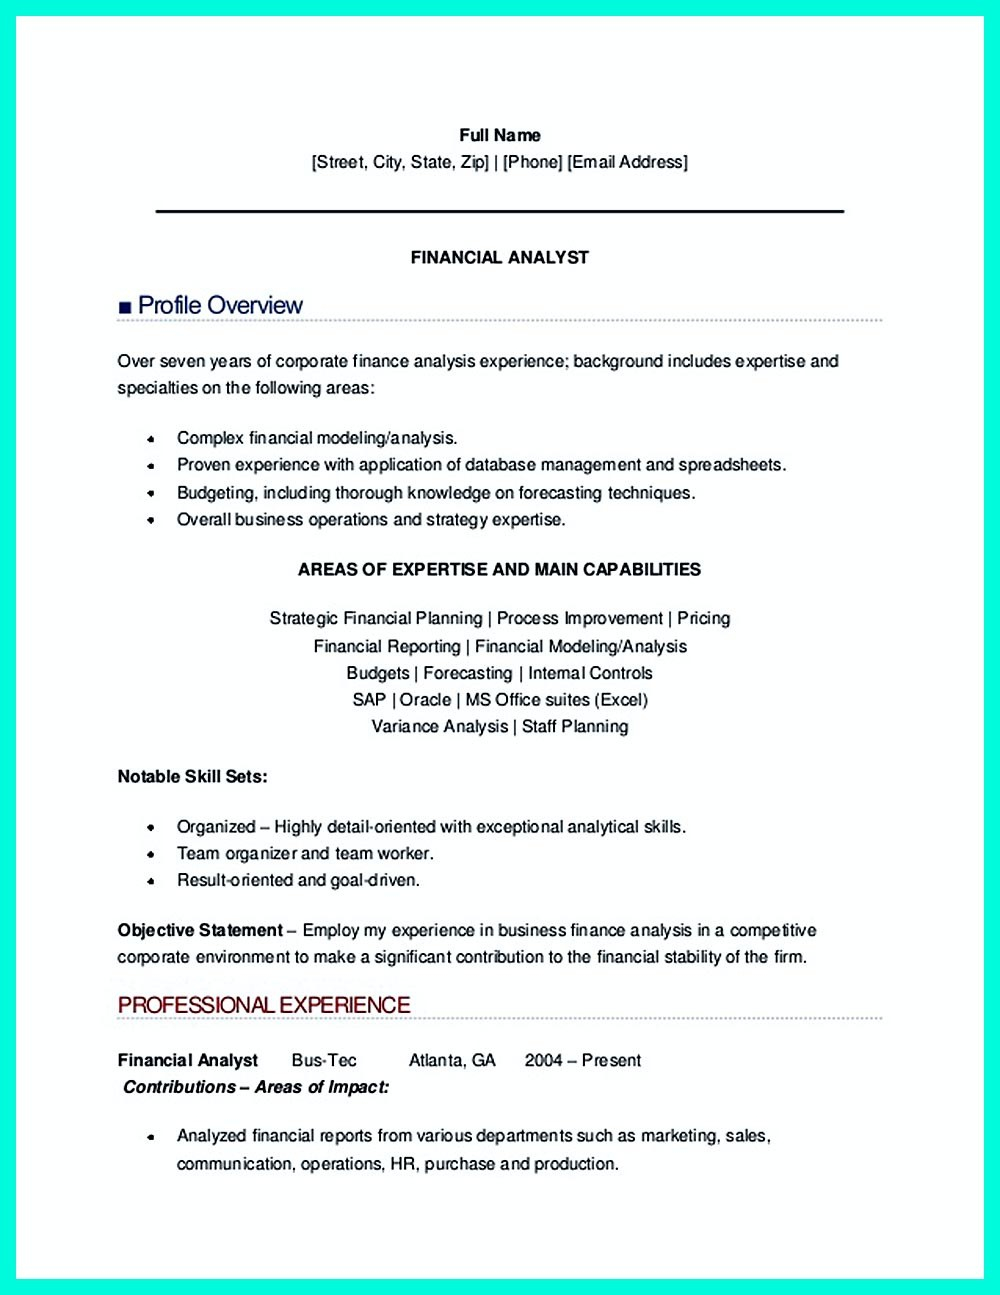 Data Analytics Resume - Resume for Financial Analyst Unique Lovely Sample College